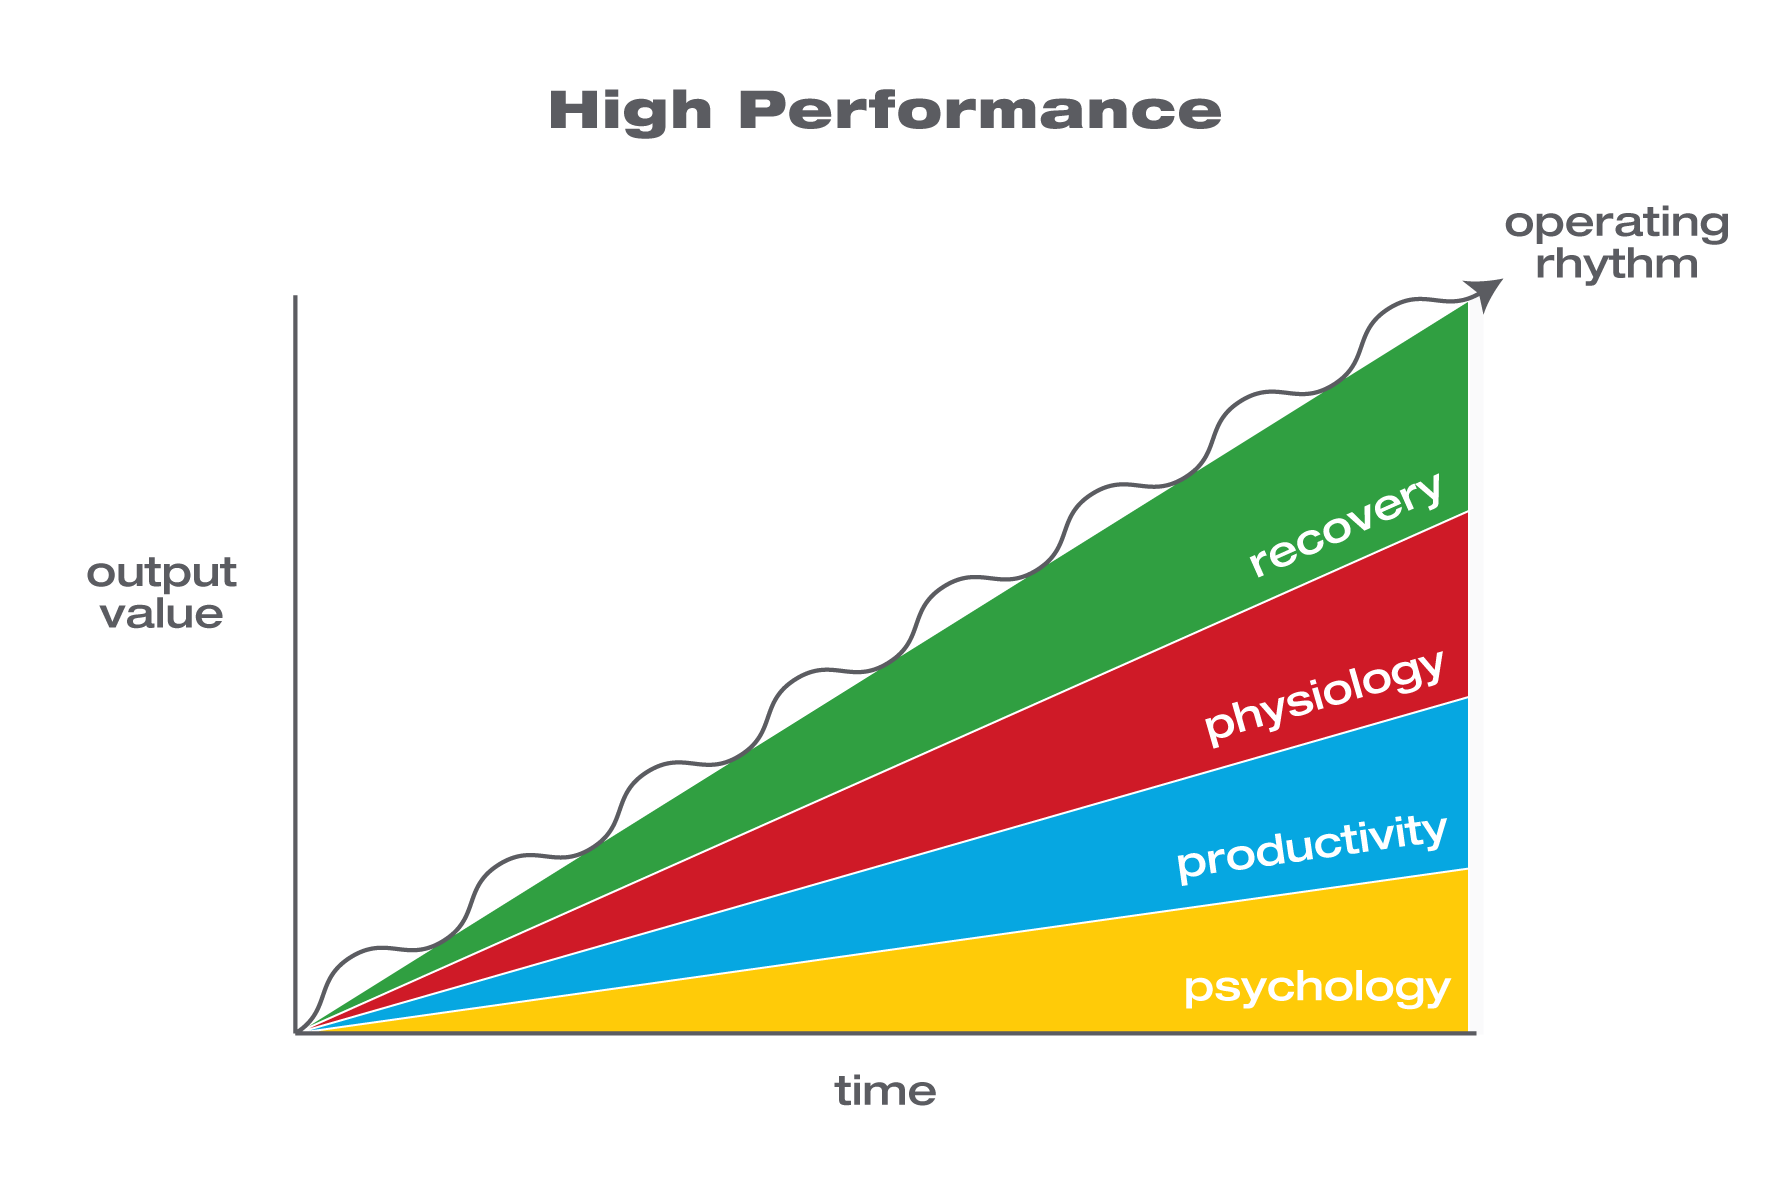 high performance operating rhythm